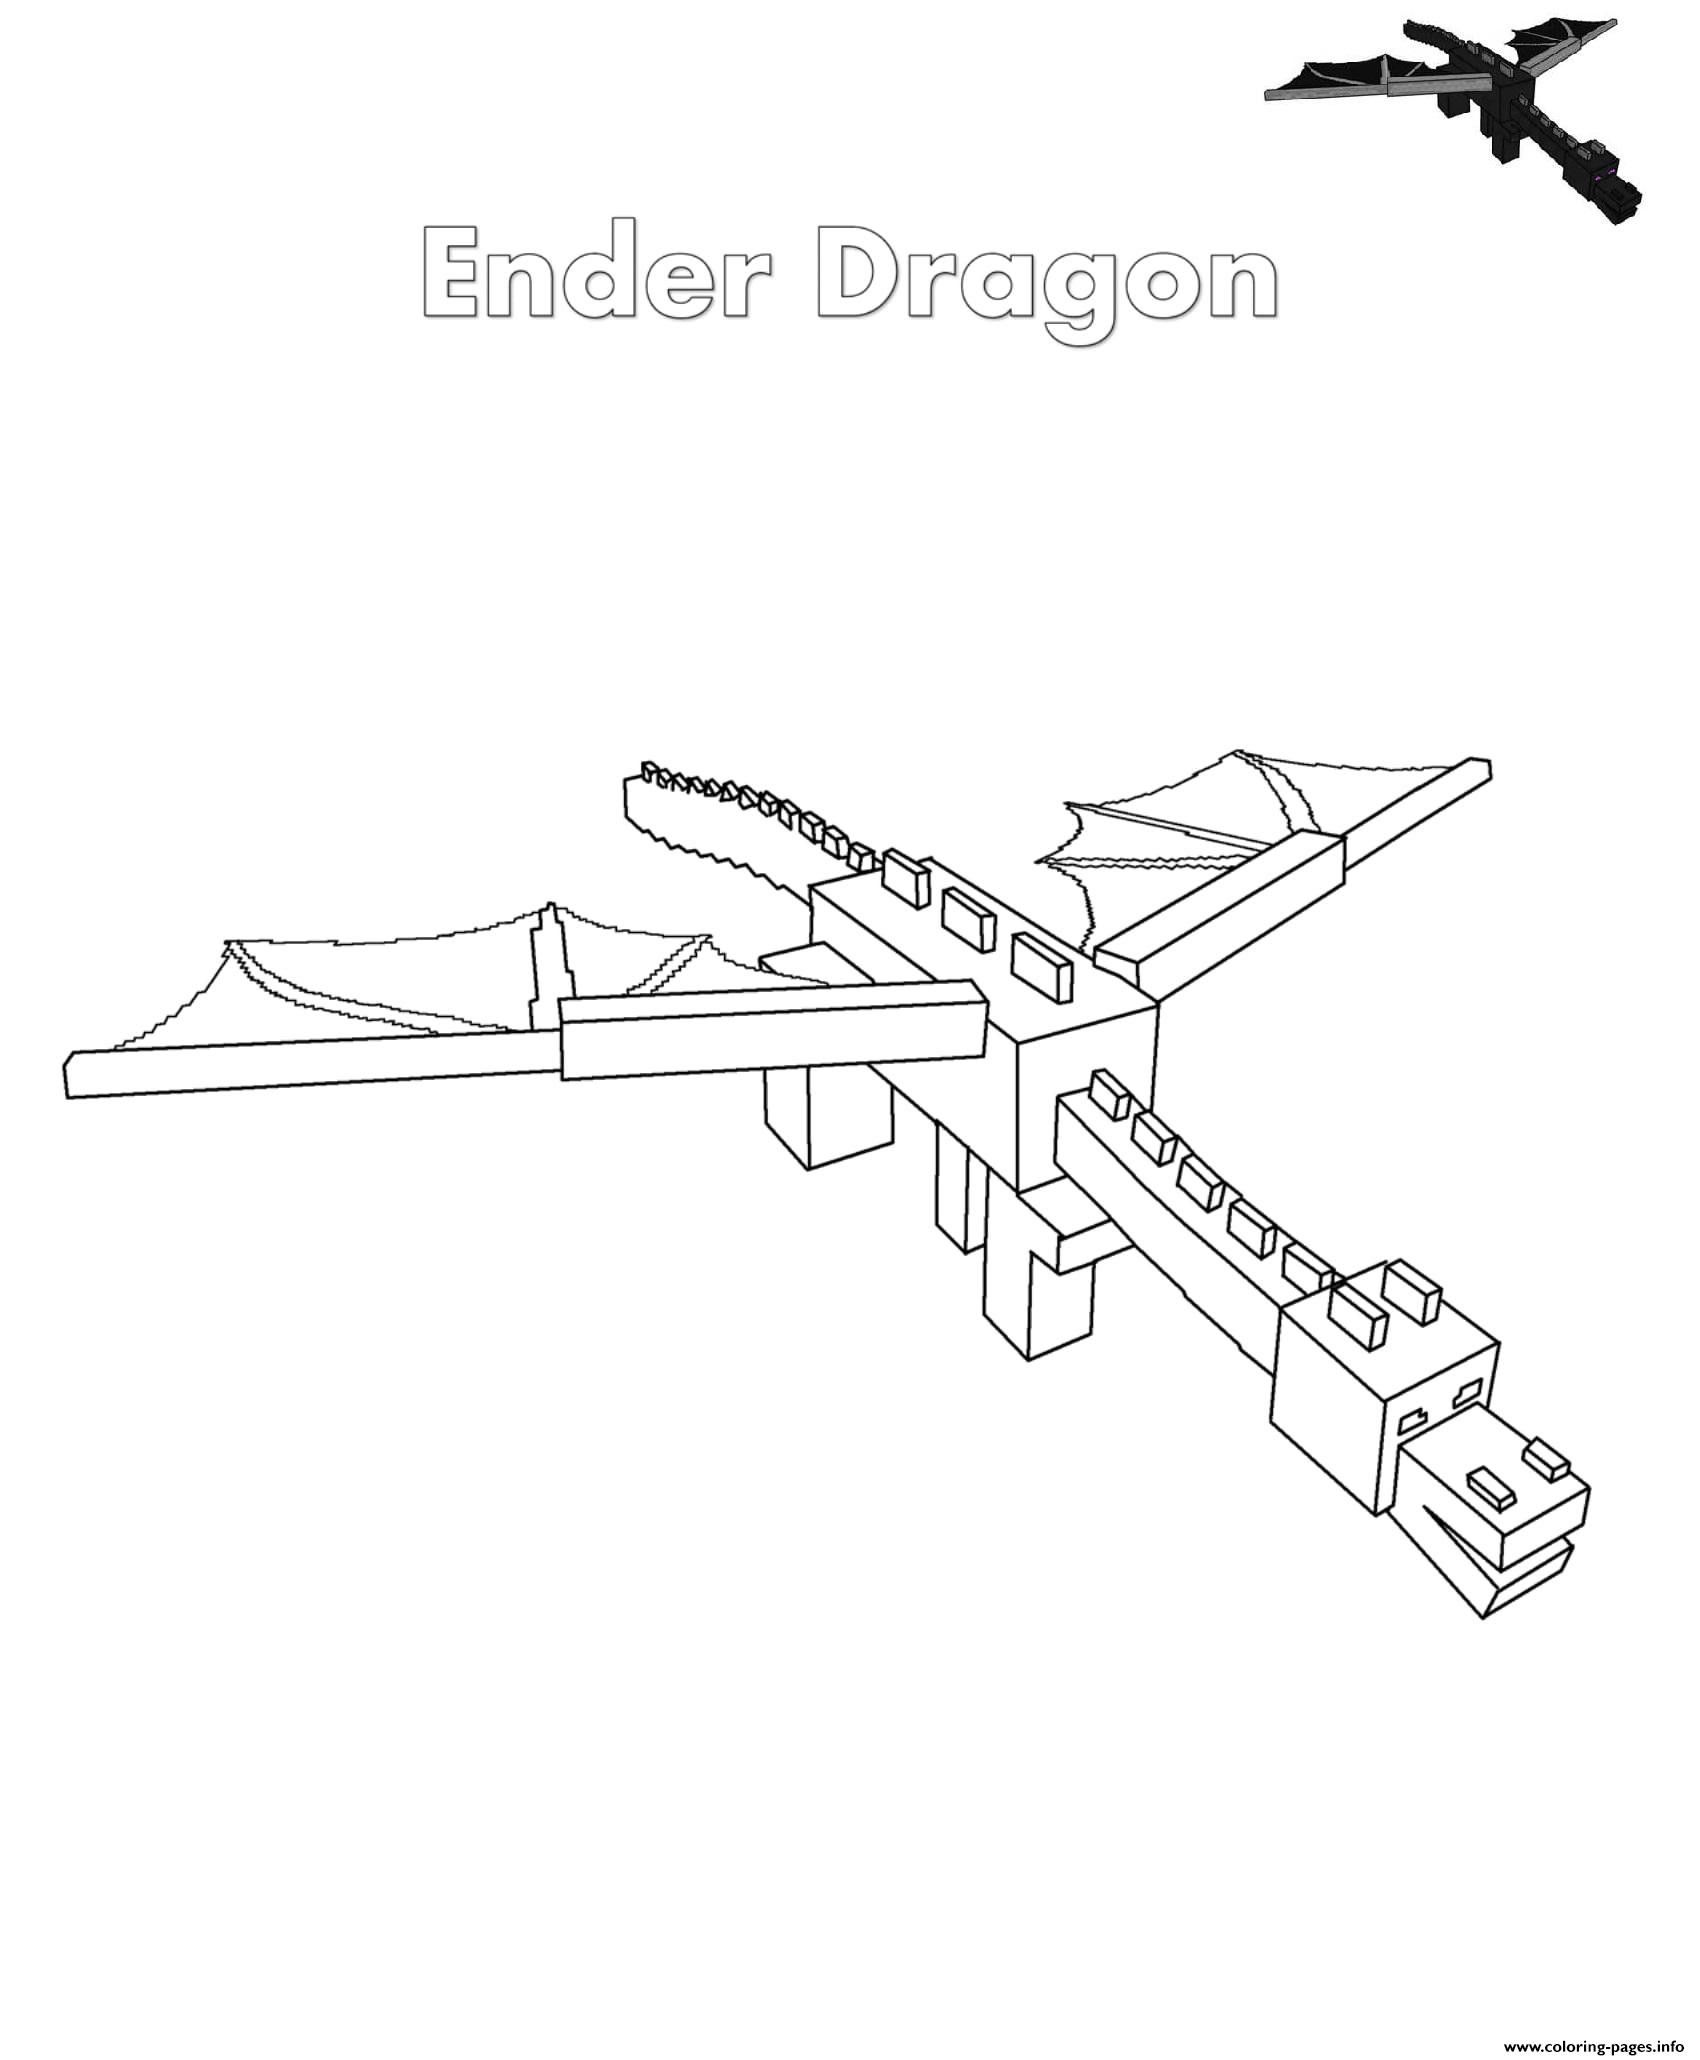 Ender Dragon Coloring Page Youngandtae Com In 2020 Minecraft Ender Dragon Dragon Coloring Page Minecraft Coloring Pages